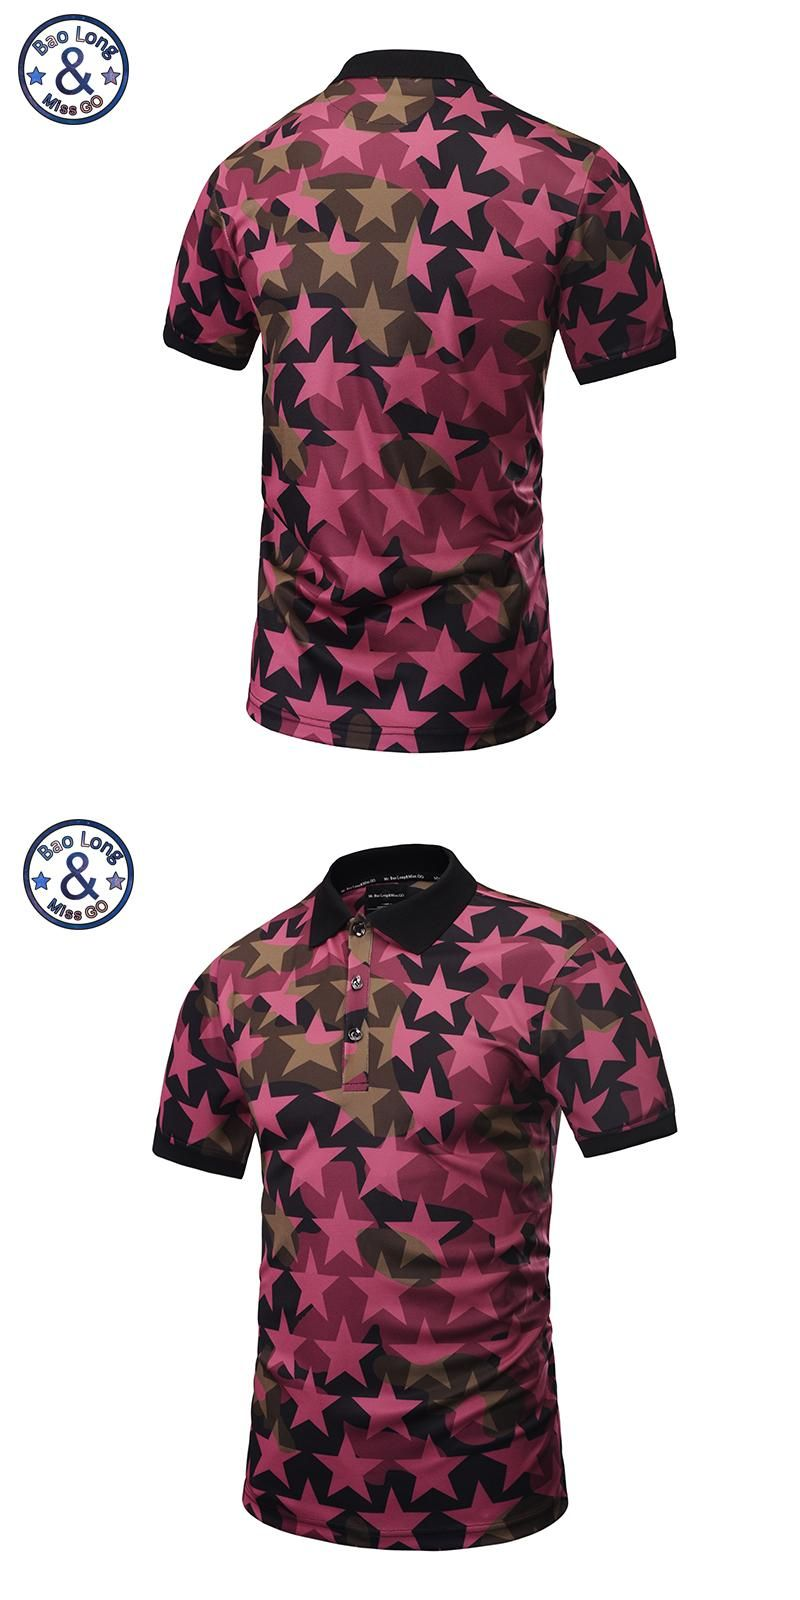 2018 New Arrival Men Polo Shirts 3d Star Design Printed Hip Hop